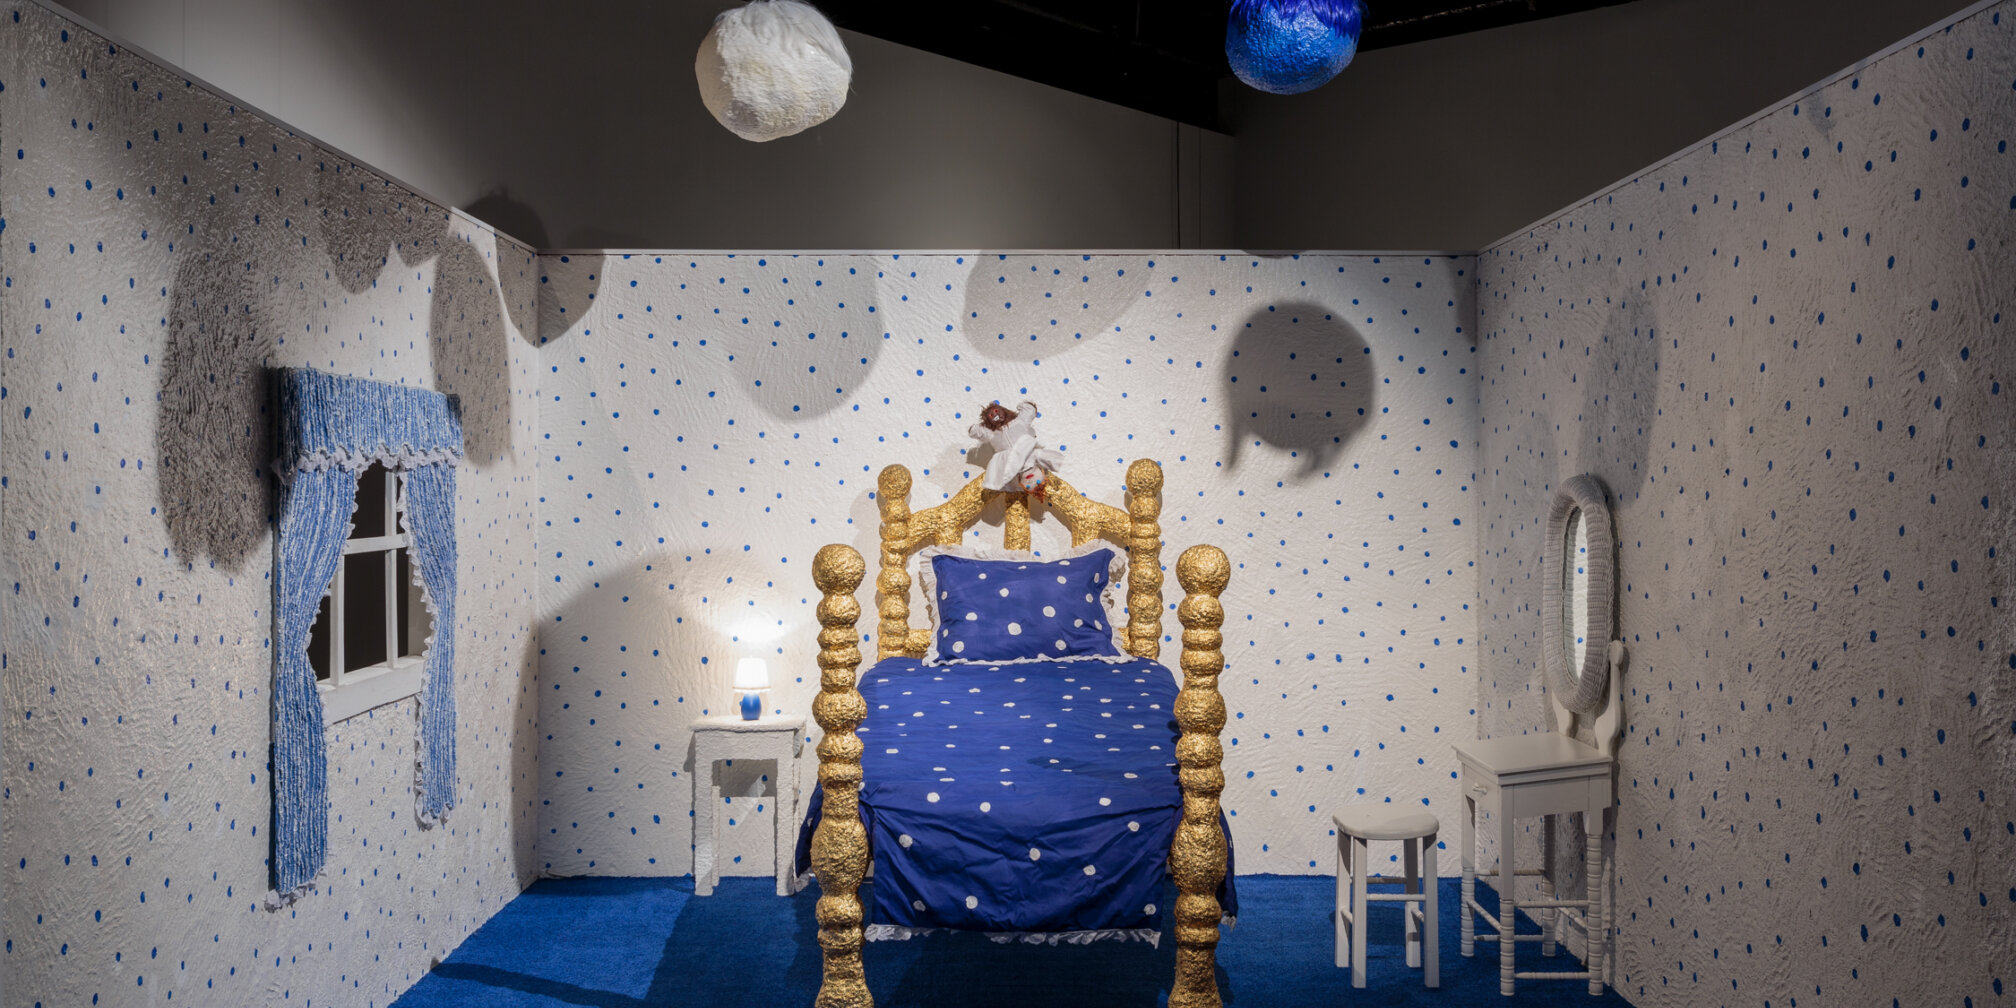 Trulee Hall, Polkadot Bedroom, Nightmare Set (Girl/ Monster), 2018, exhibition view at Zabludowicz Collection, London, 2020. Photo: Tim Bowditch